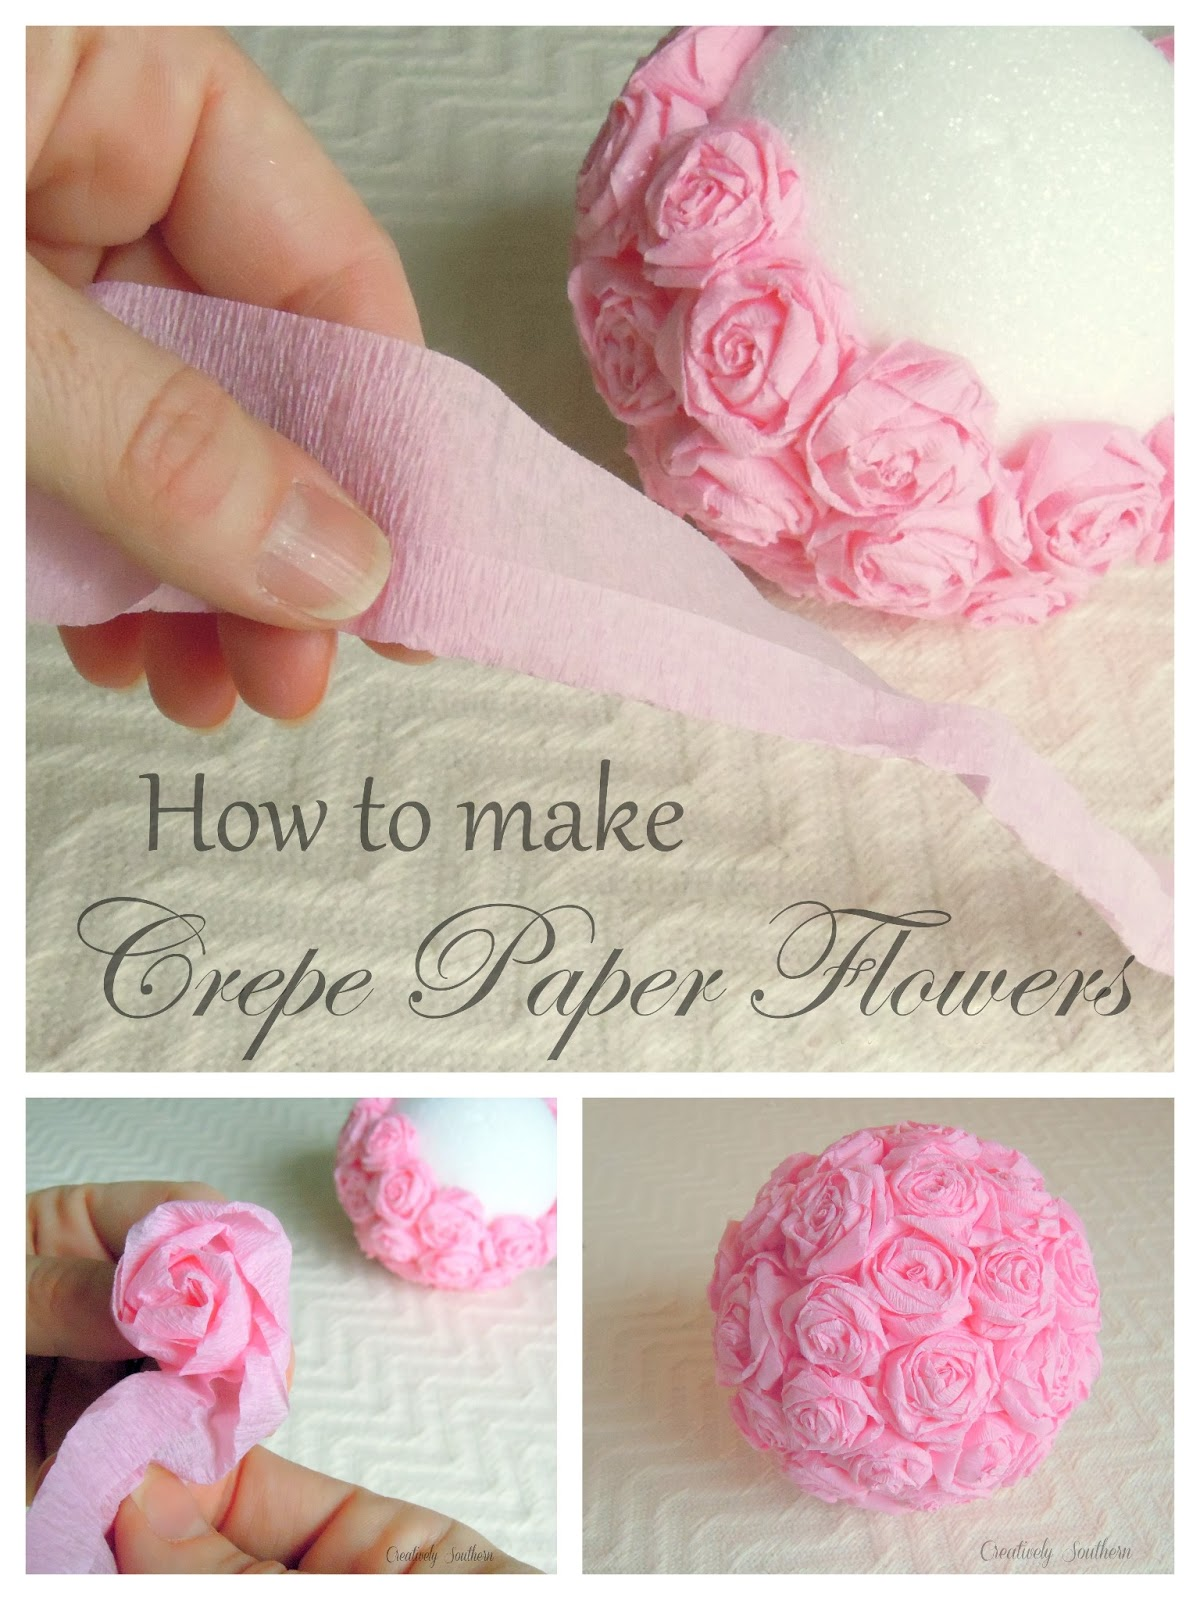 Crepe paper flowers for an elegant craft idea mightylinksfo